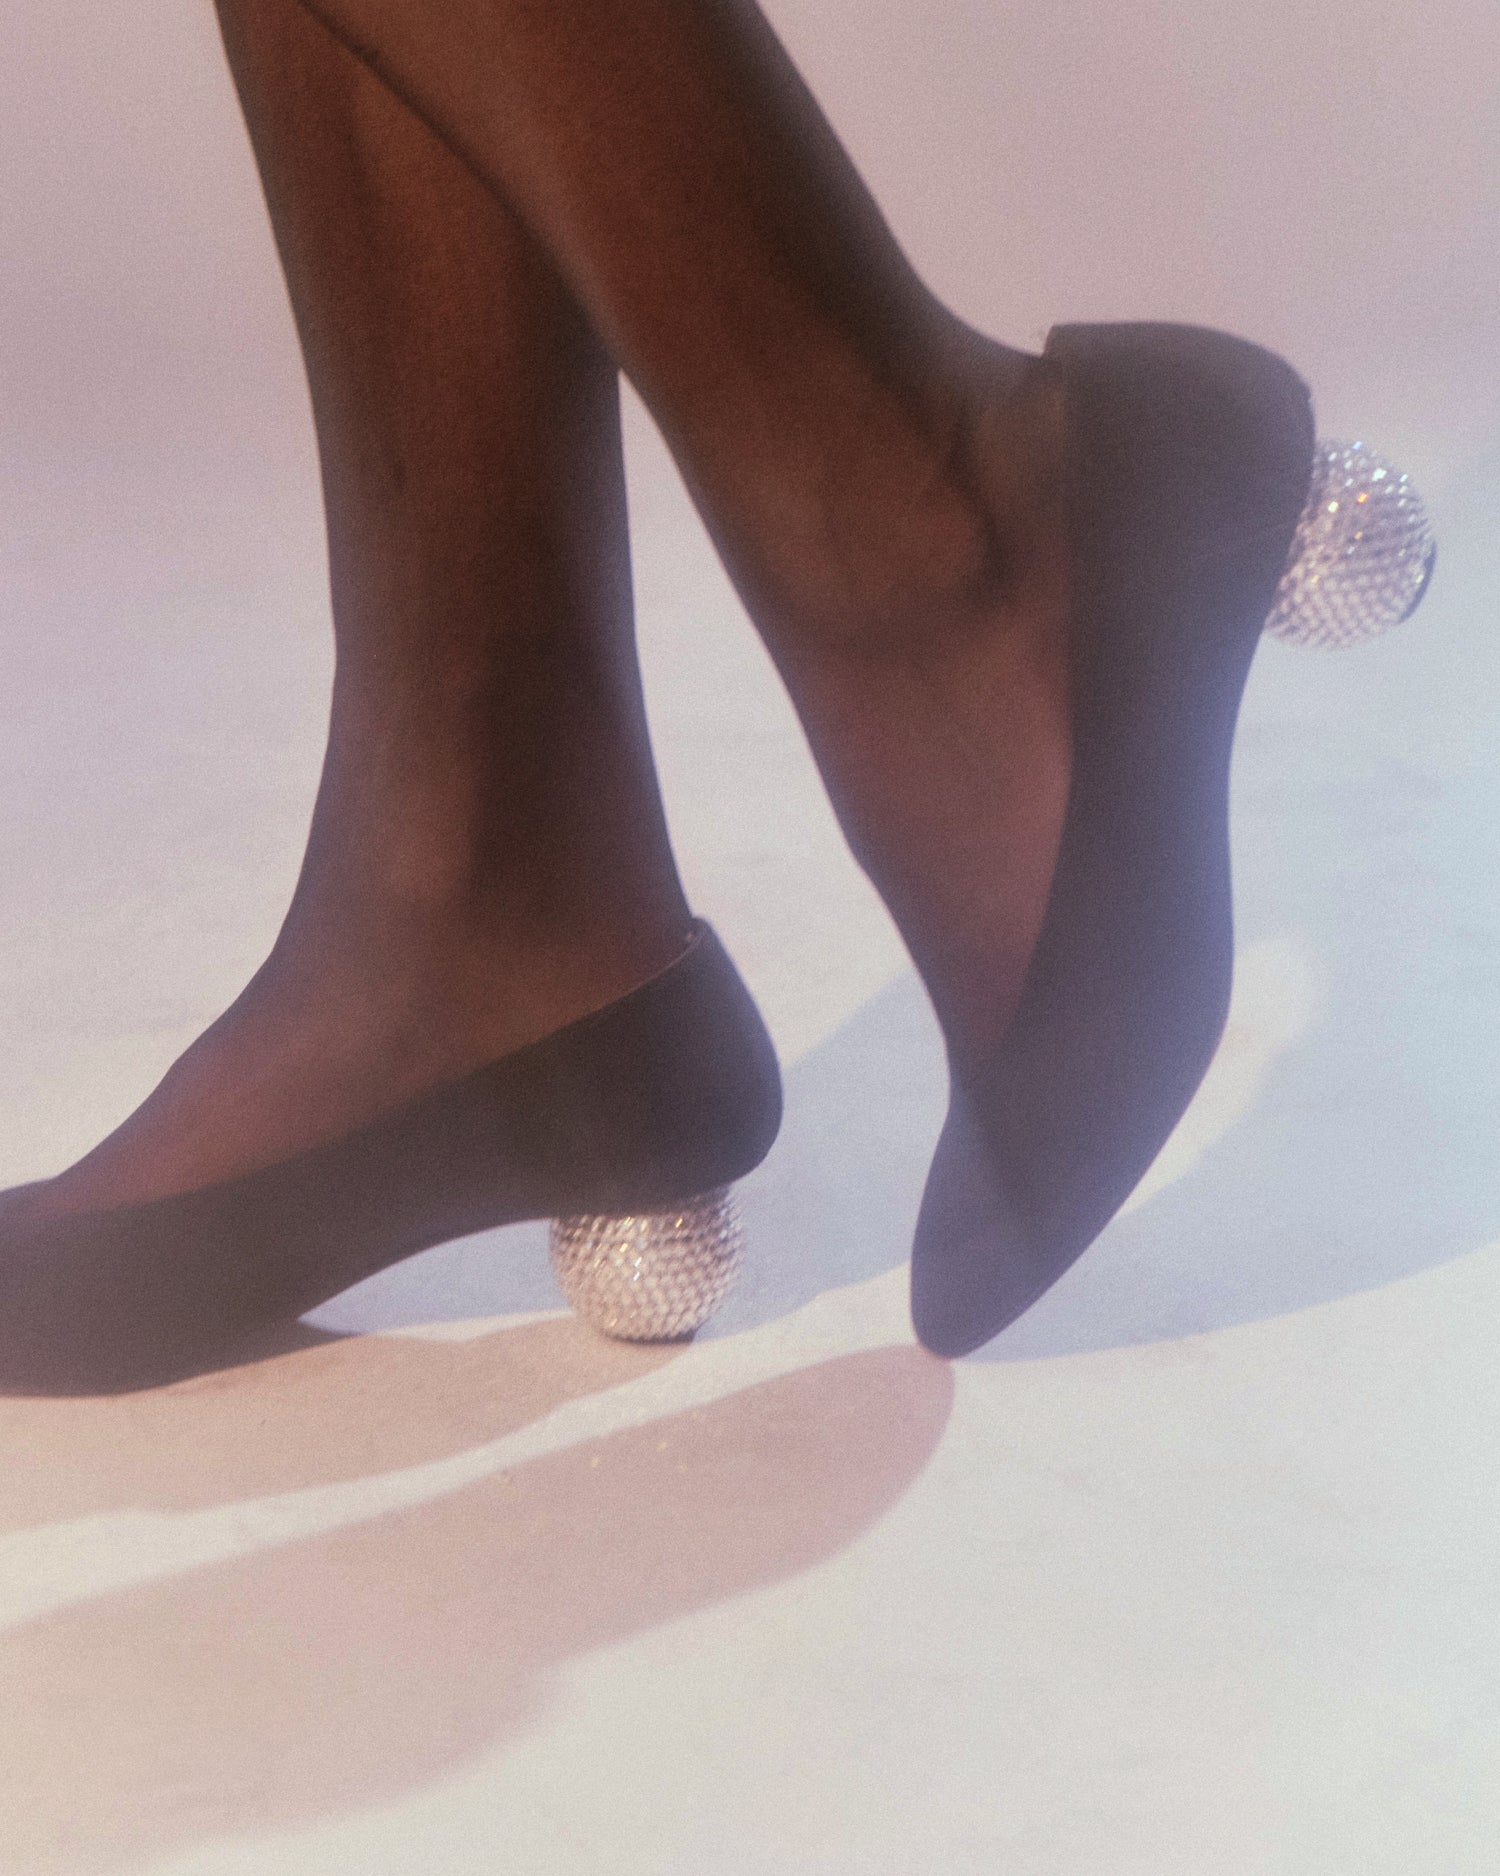 Yves Saint Laurent Disco Ball Shoes